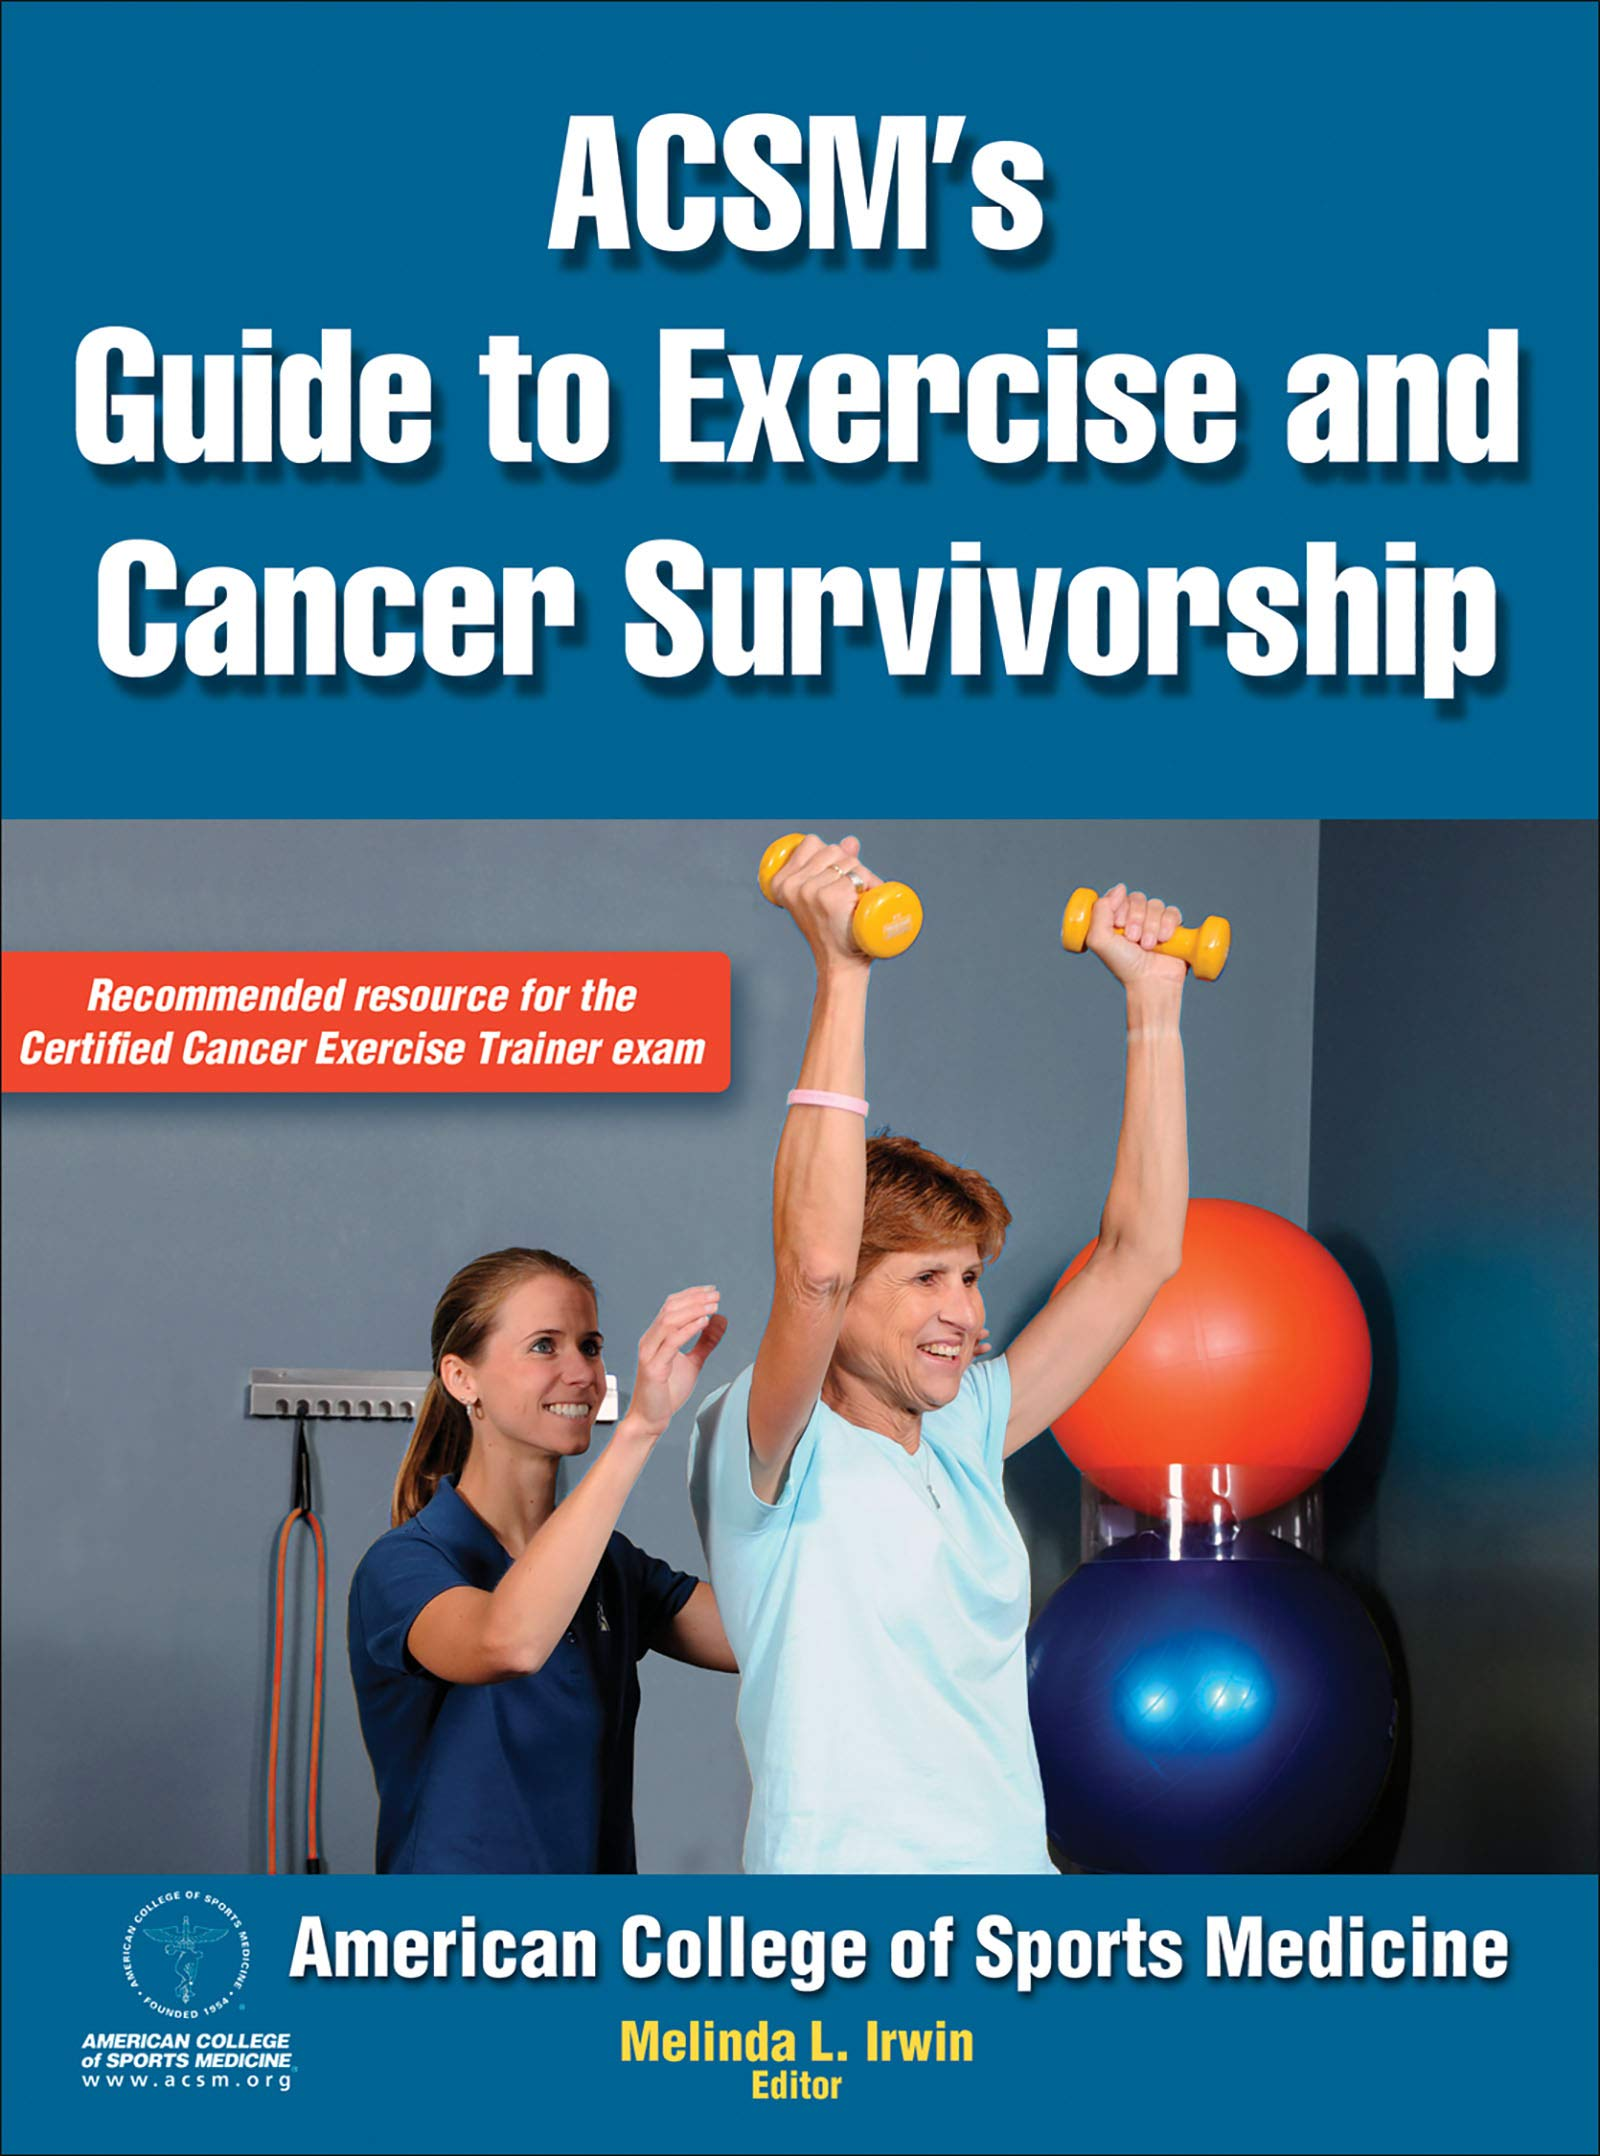 Acsm S Guide To Exercise And Cancer Survivorship Kindle Edition By American College Of Sports Medicine Irwin Melinda L American College Of Sports Medicine Irwin Melinda Health Fitness Dieting Kindle Ebooks